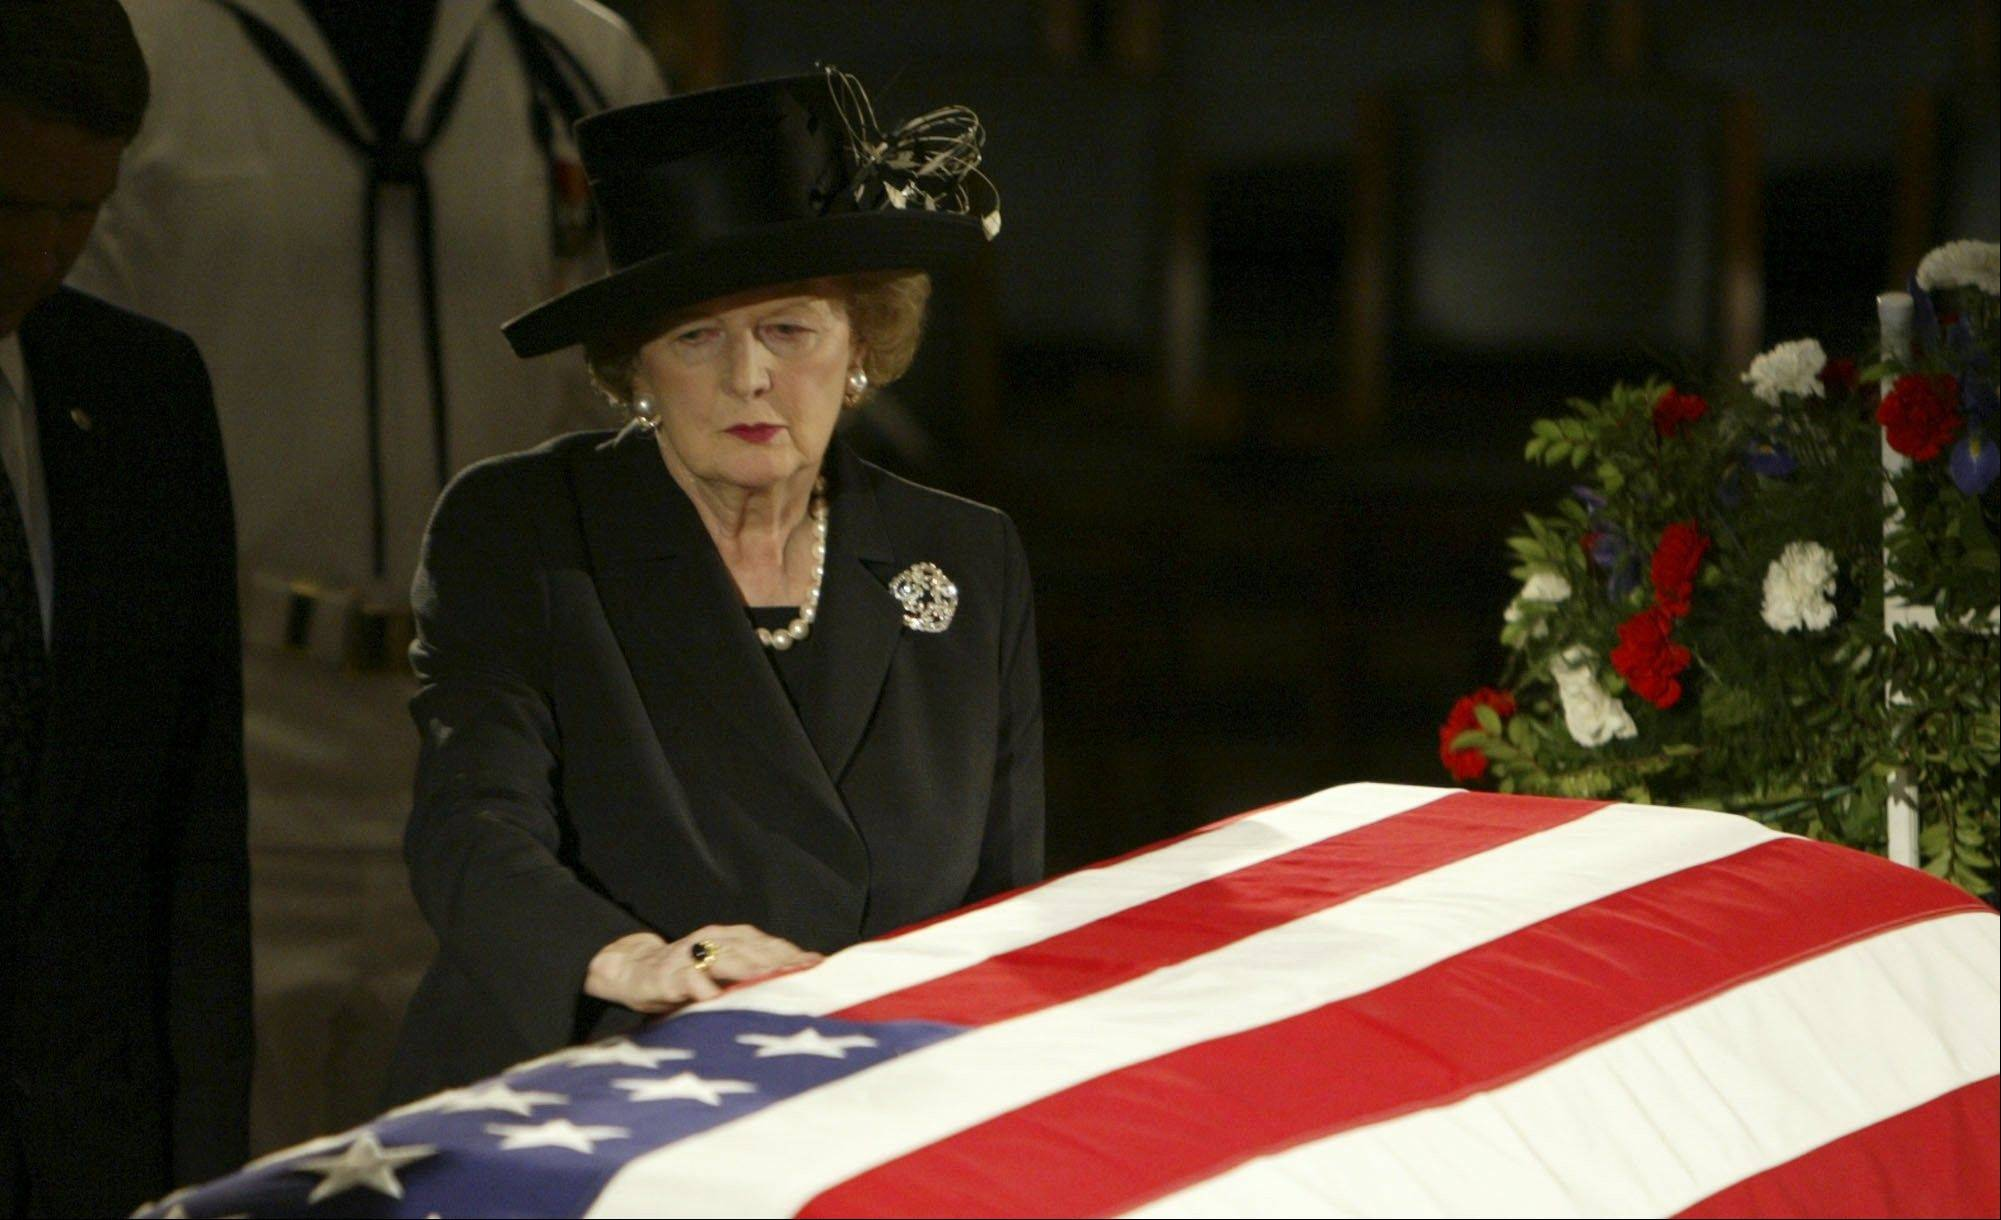 In this June 9, 2004 file photo, former British Prime Minister Margaret Thatcher pauses at the casket of former U.S. President Ronald Reagan where he was lying in state in the Capitol Rotunda on Capitol Hill in Washington. Thatchers former spokesman, Tim Bell, said that the former British Prime Minister Margaret Thatcher died Monday morning, April 8, 2013, of a stroke. She was 87.